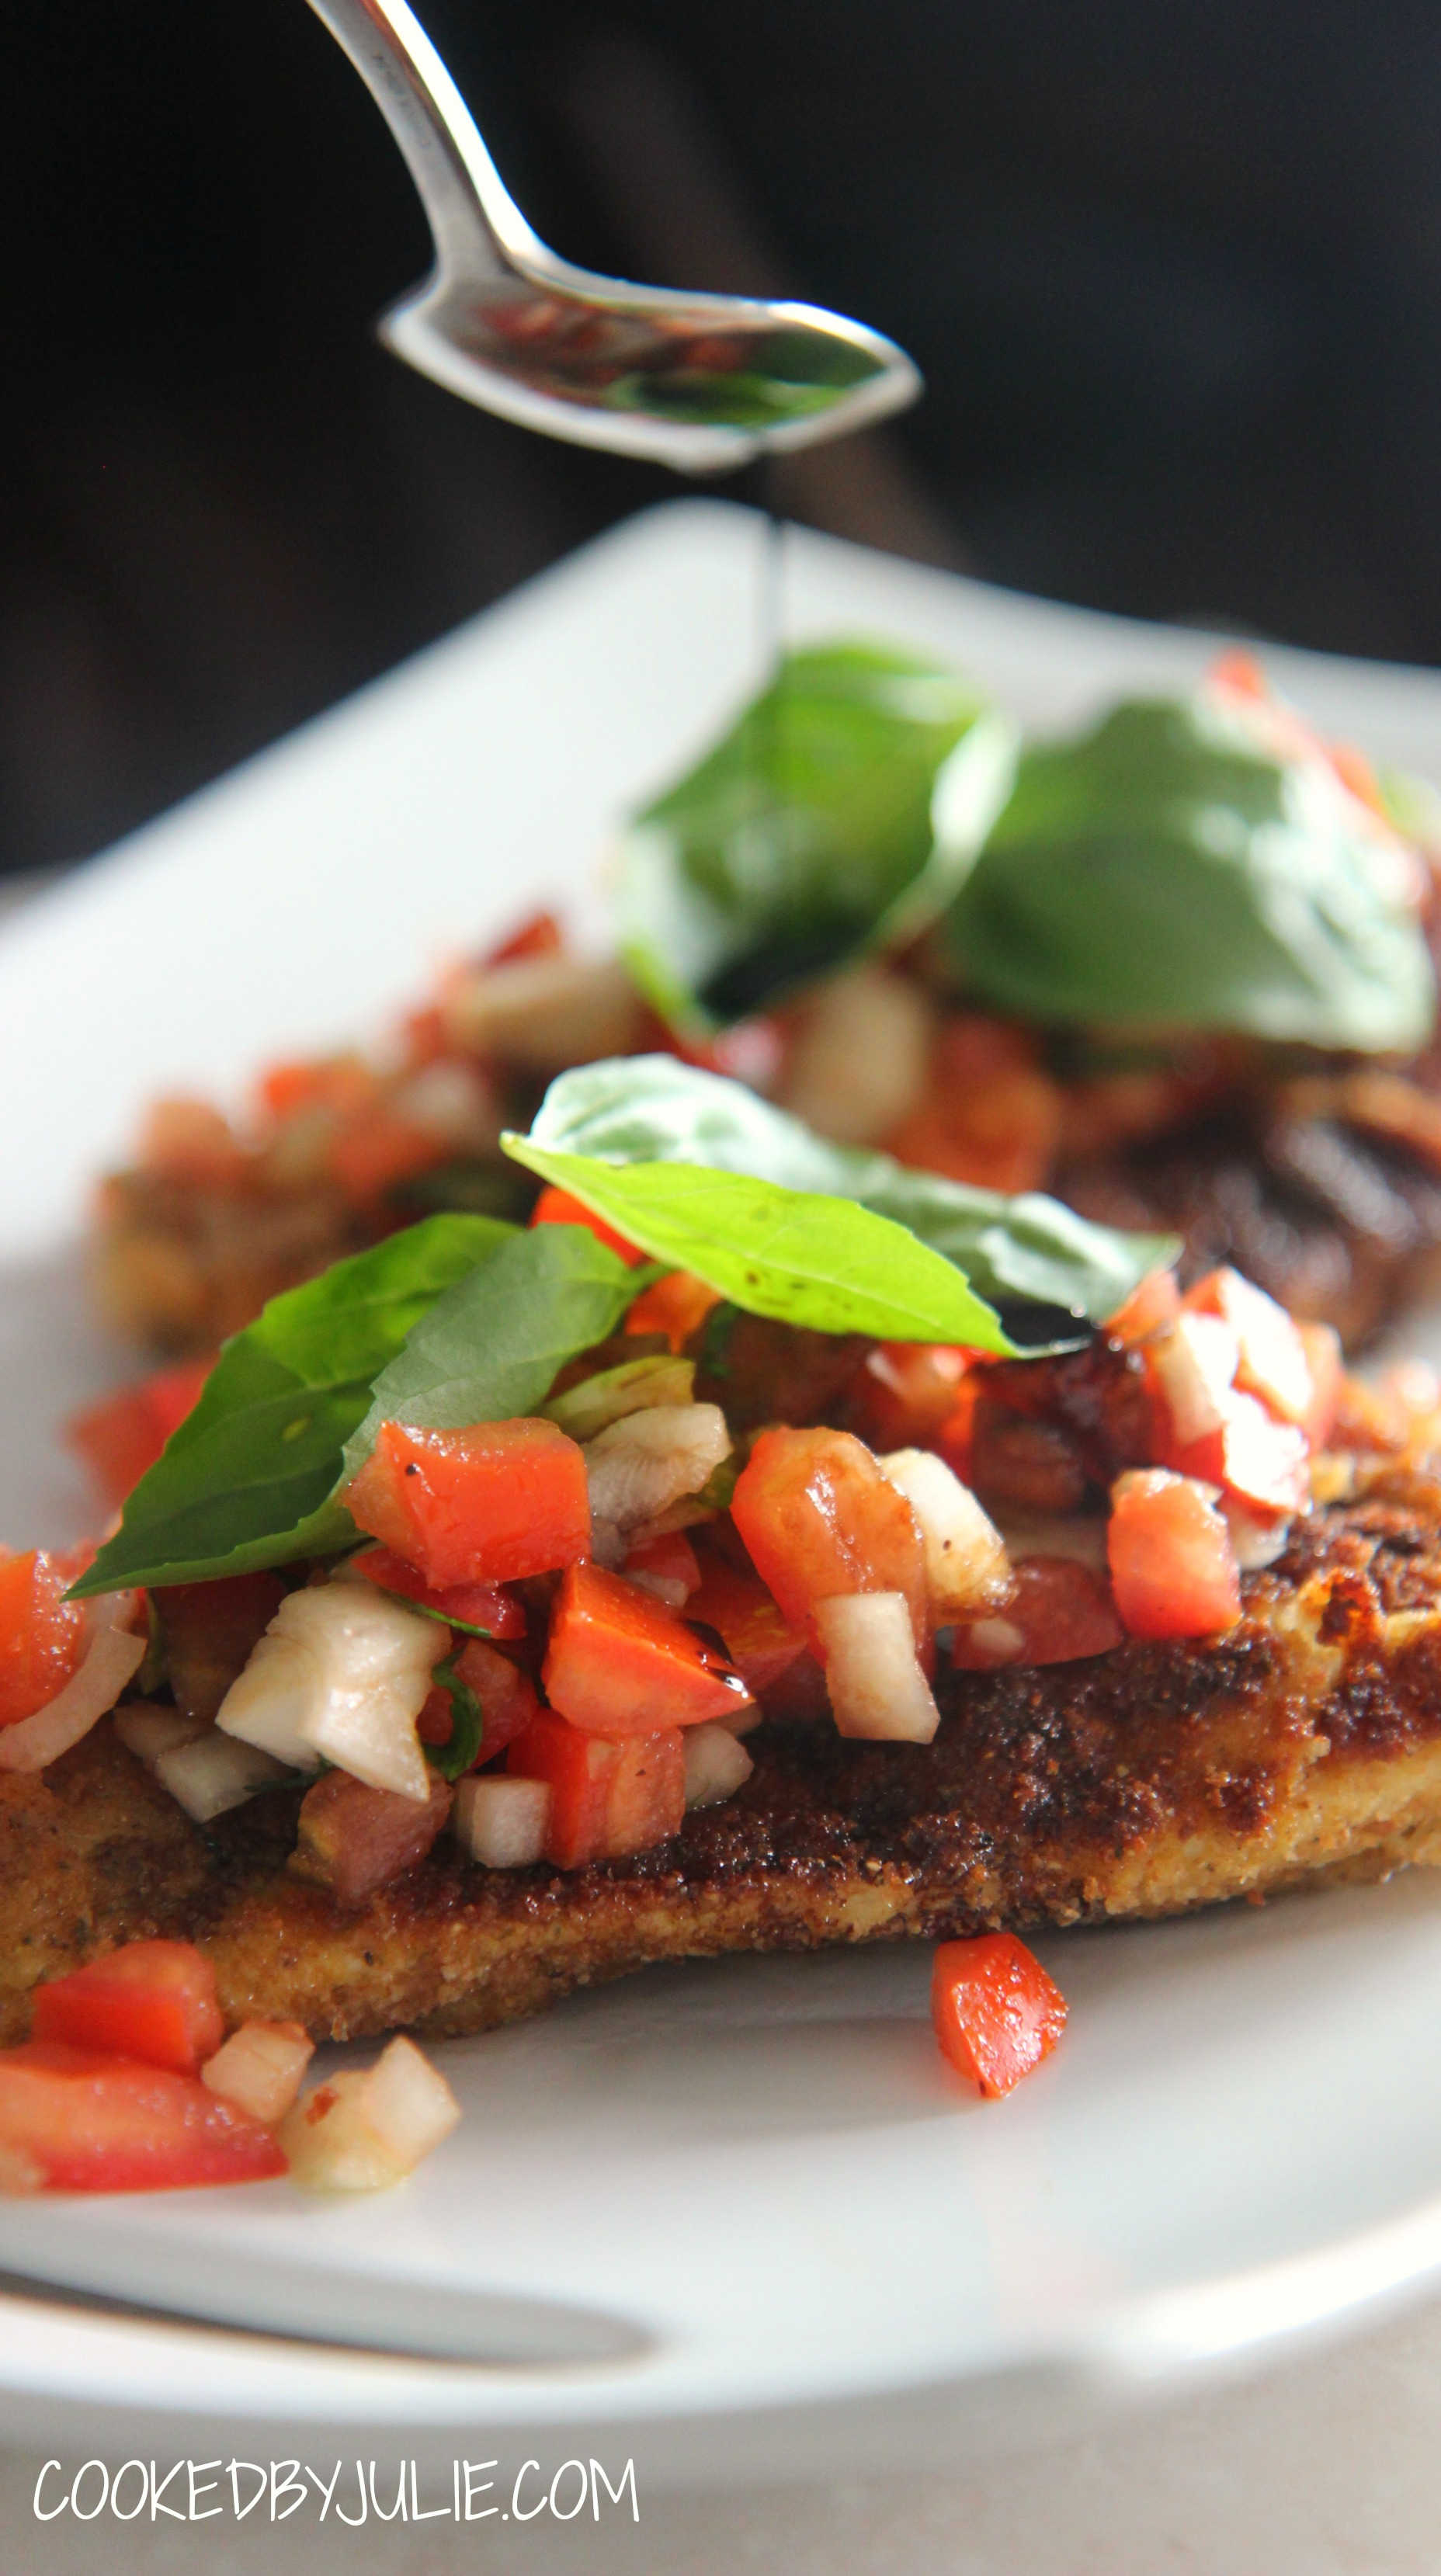 Chicken Bruschetta with tomatoes, onions, mozzarella cheese and basil.